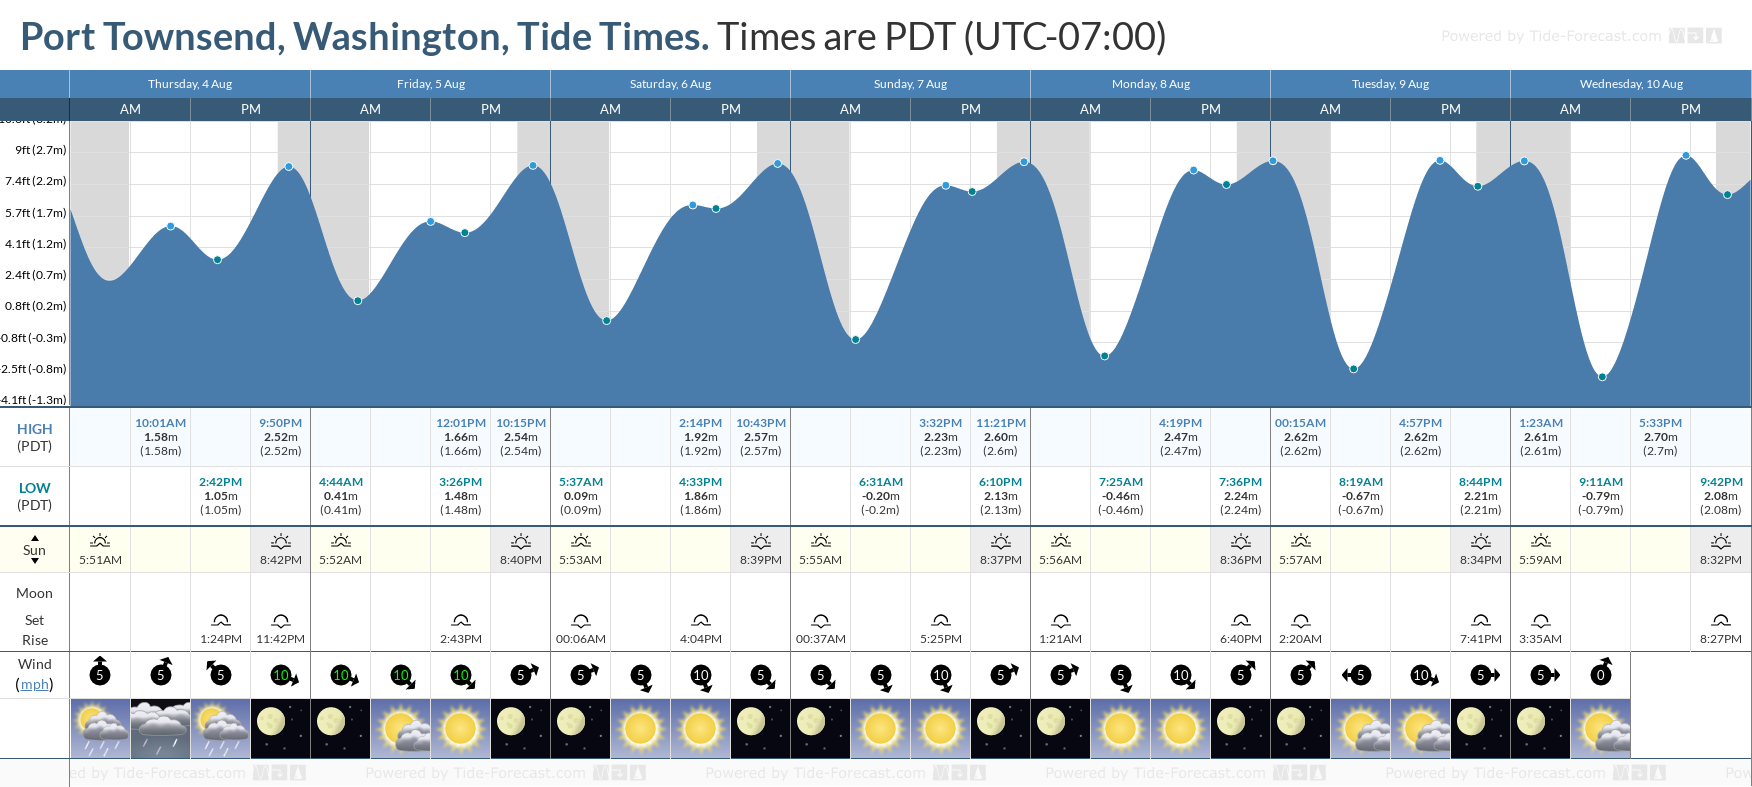 Port Townsend, Washington Tide Chart including high and low tide tide times for the next 7 days